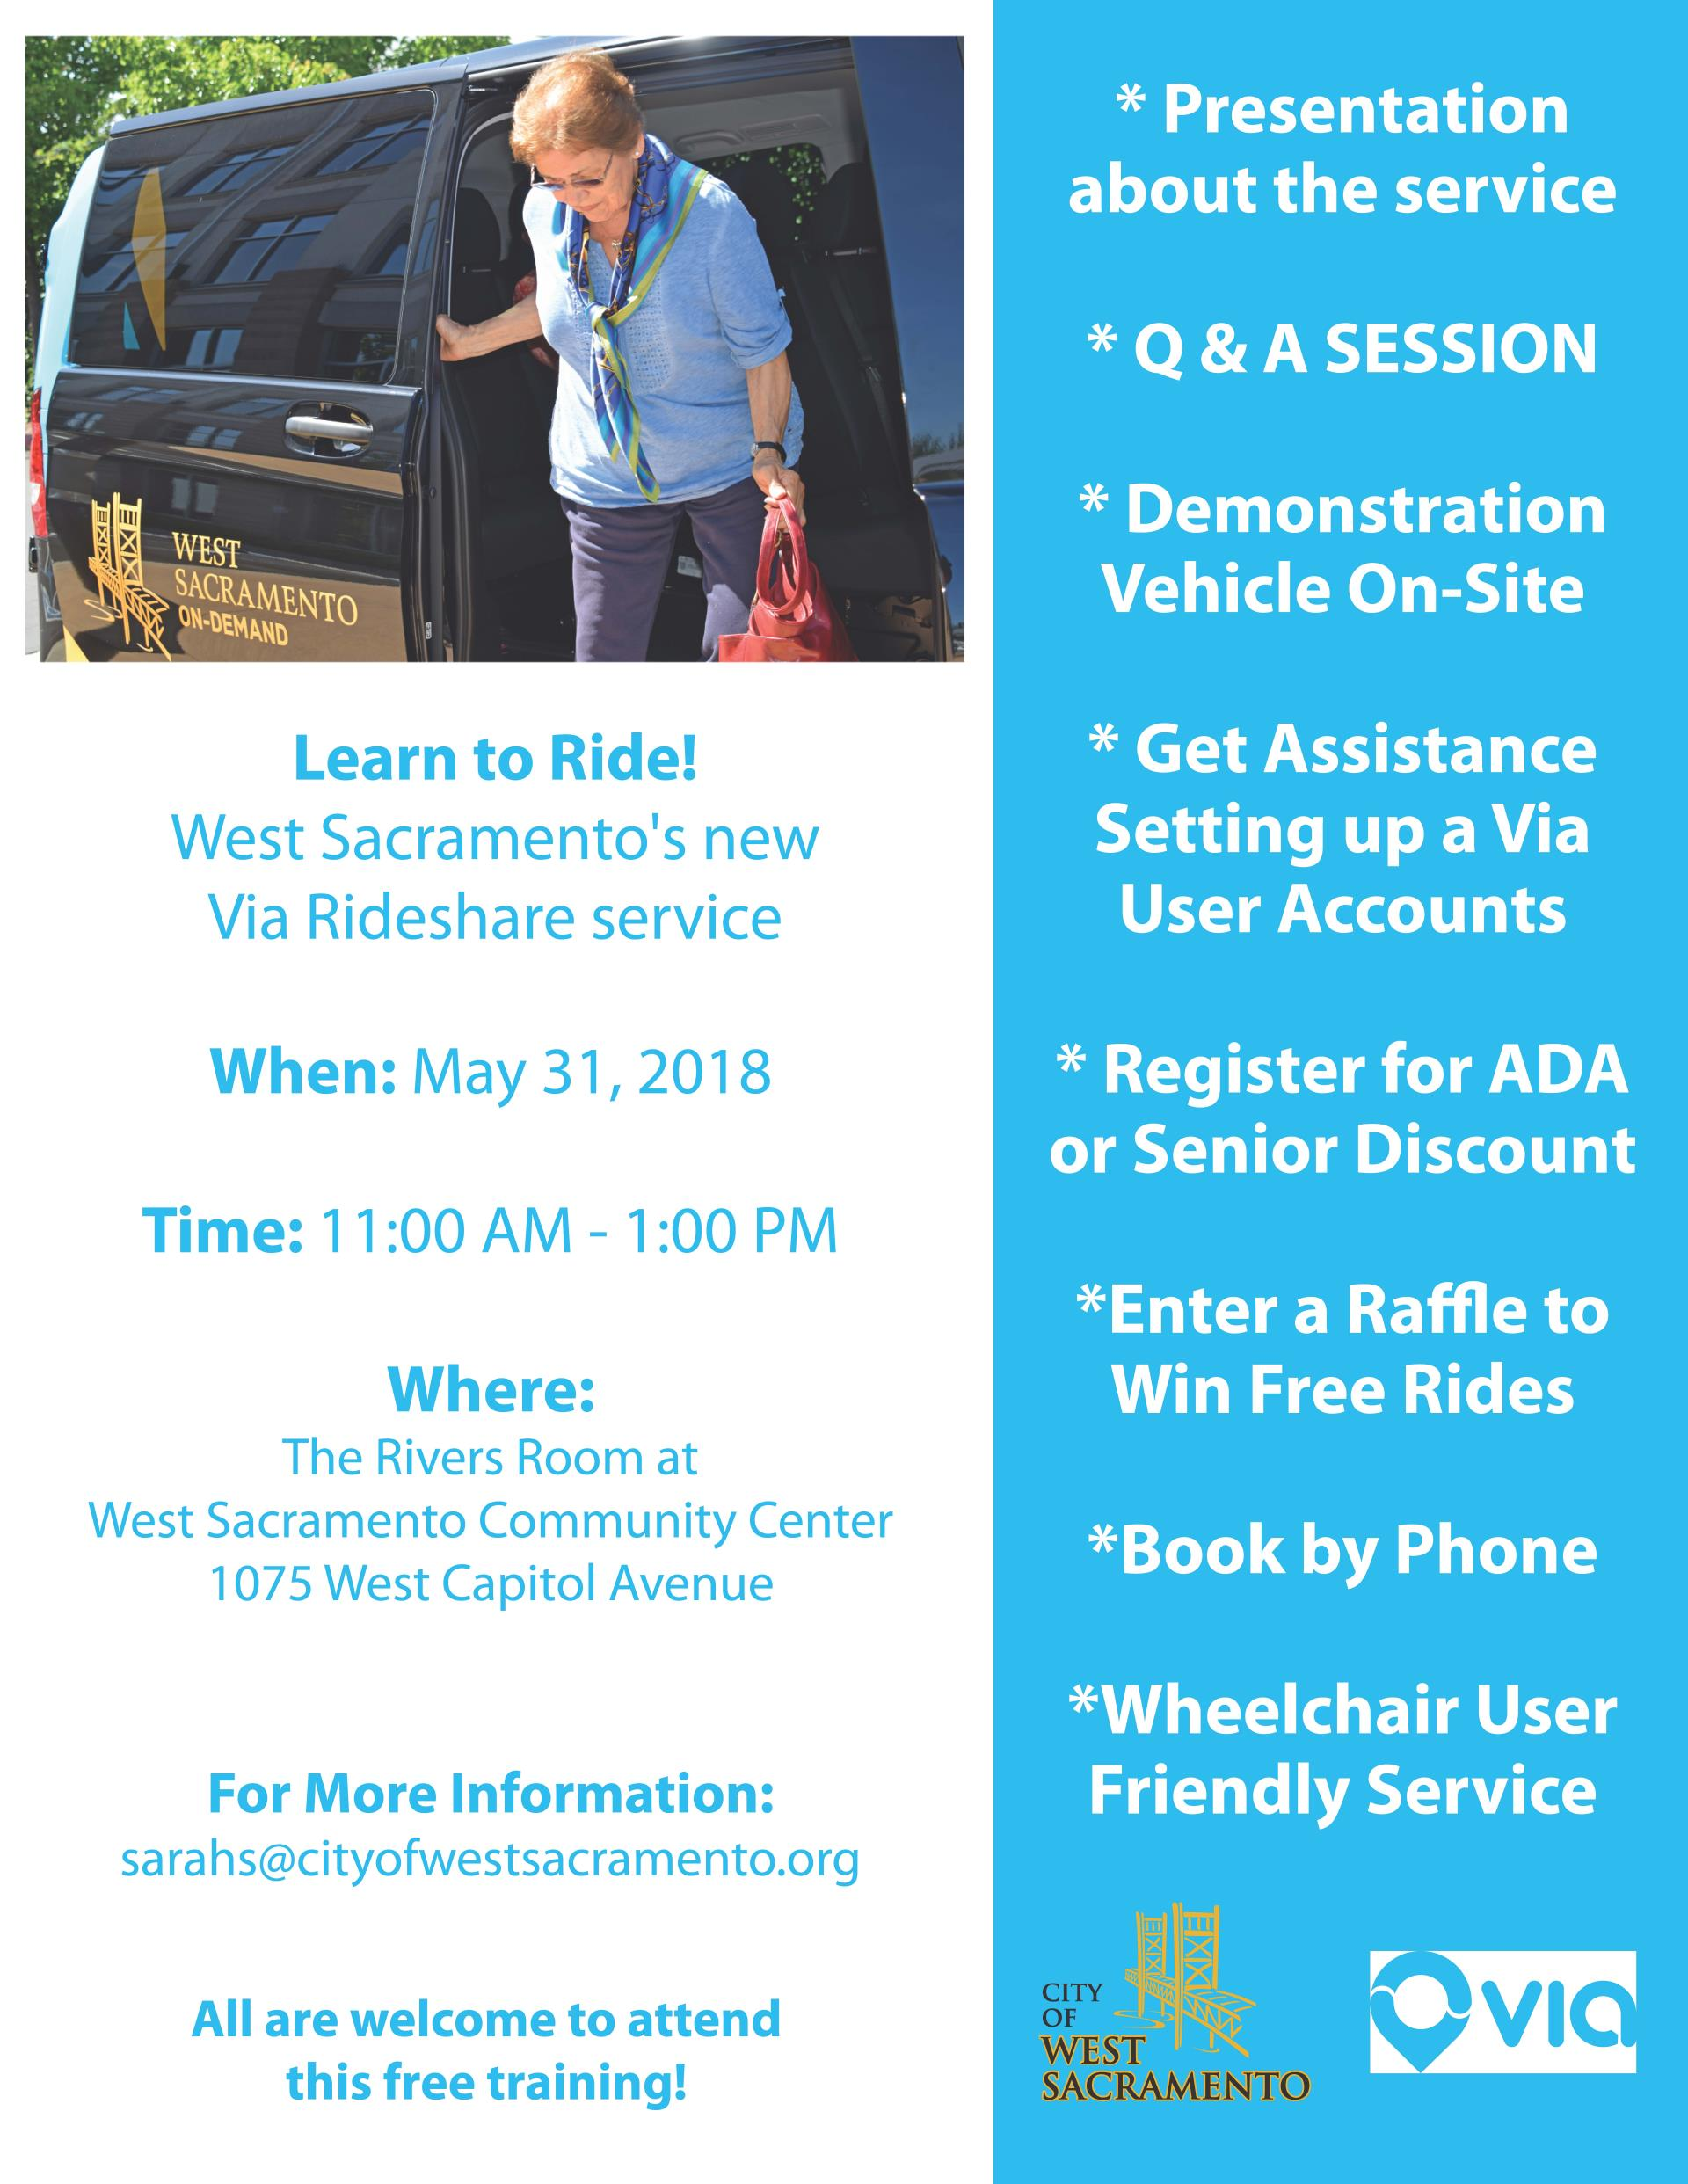 Age friendly flyer to via app event